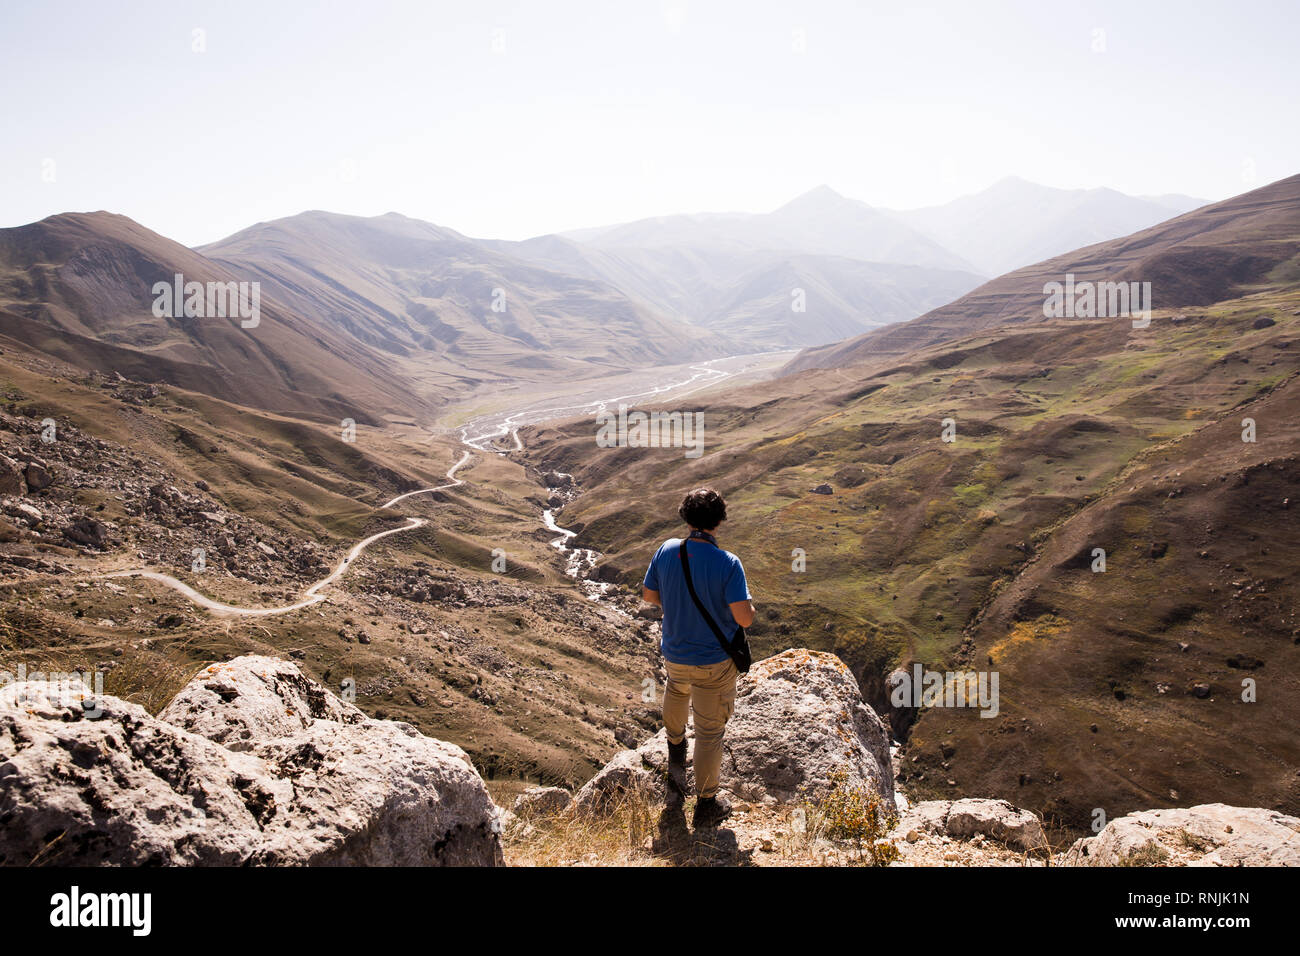 Overlooking  valley outside of Quba, Azerbaijan. You can often see wild eagles flying overhead. - Stock Image